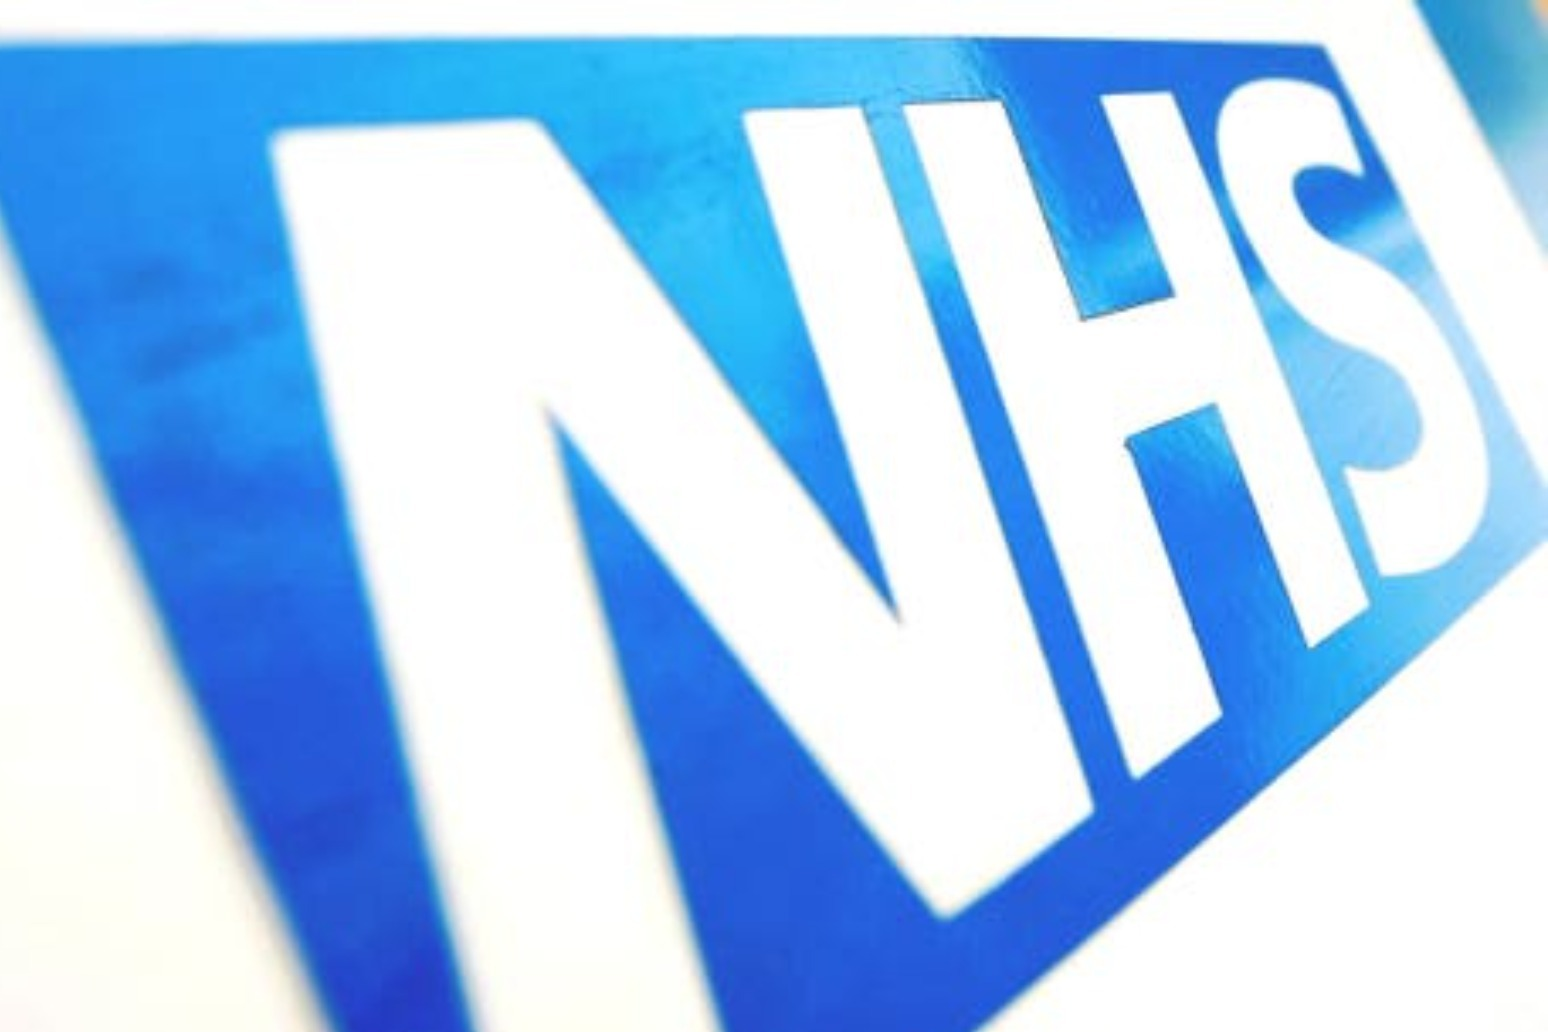 'One in six people' in England could be on NHS waiting list by April